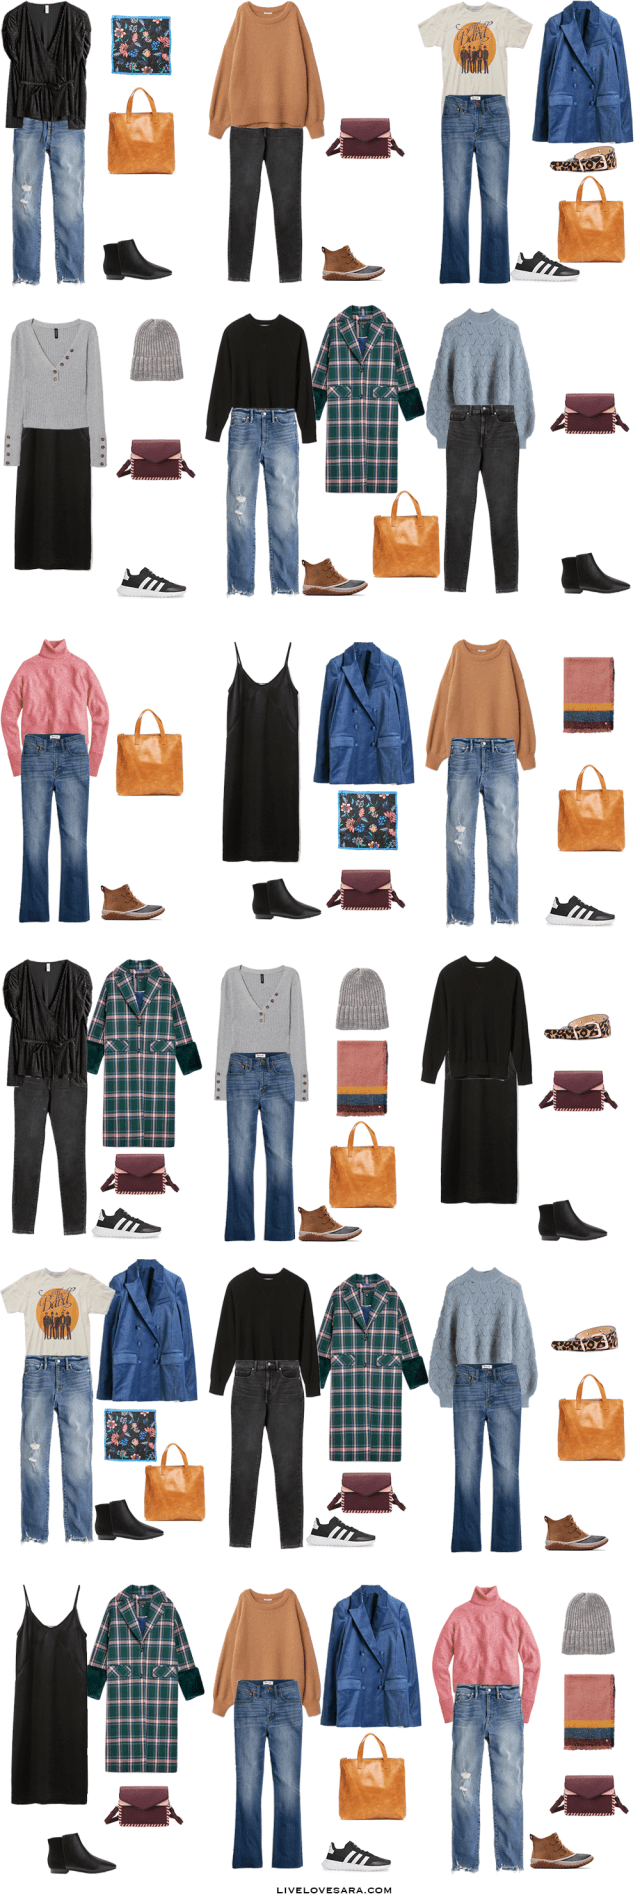 If you are wondering what to pack for a 10 day vacation to Seattle, Washington you can see some outfit ideas here. What to Pack for Seattle Packing Light List | What to pack for the Seattle | What to Pack for Washington | What to Pack for Autumn and Winter | Packing Light | Packing List | Travel Light | Travel Wardrobe | Travel Capsule | Capsule | Seattle #traveltips #travellight #packinglight #travelwardrobe #travel #packinglist #travelcapsule #capsulewardrobe #capsule